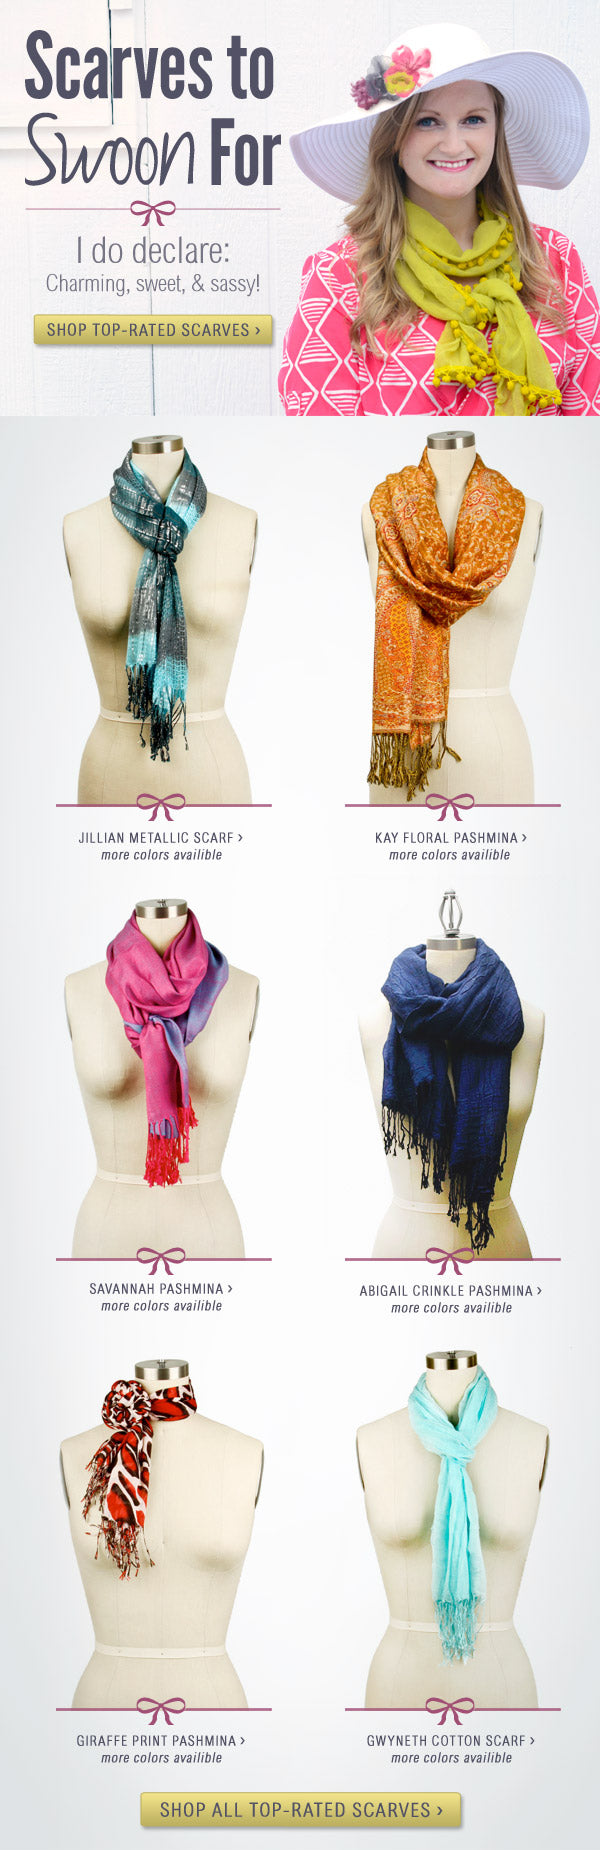 Swoon-Worthy Scarves